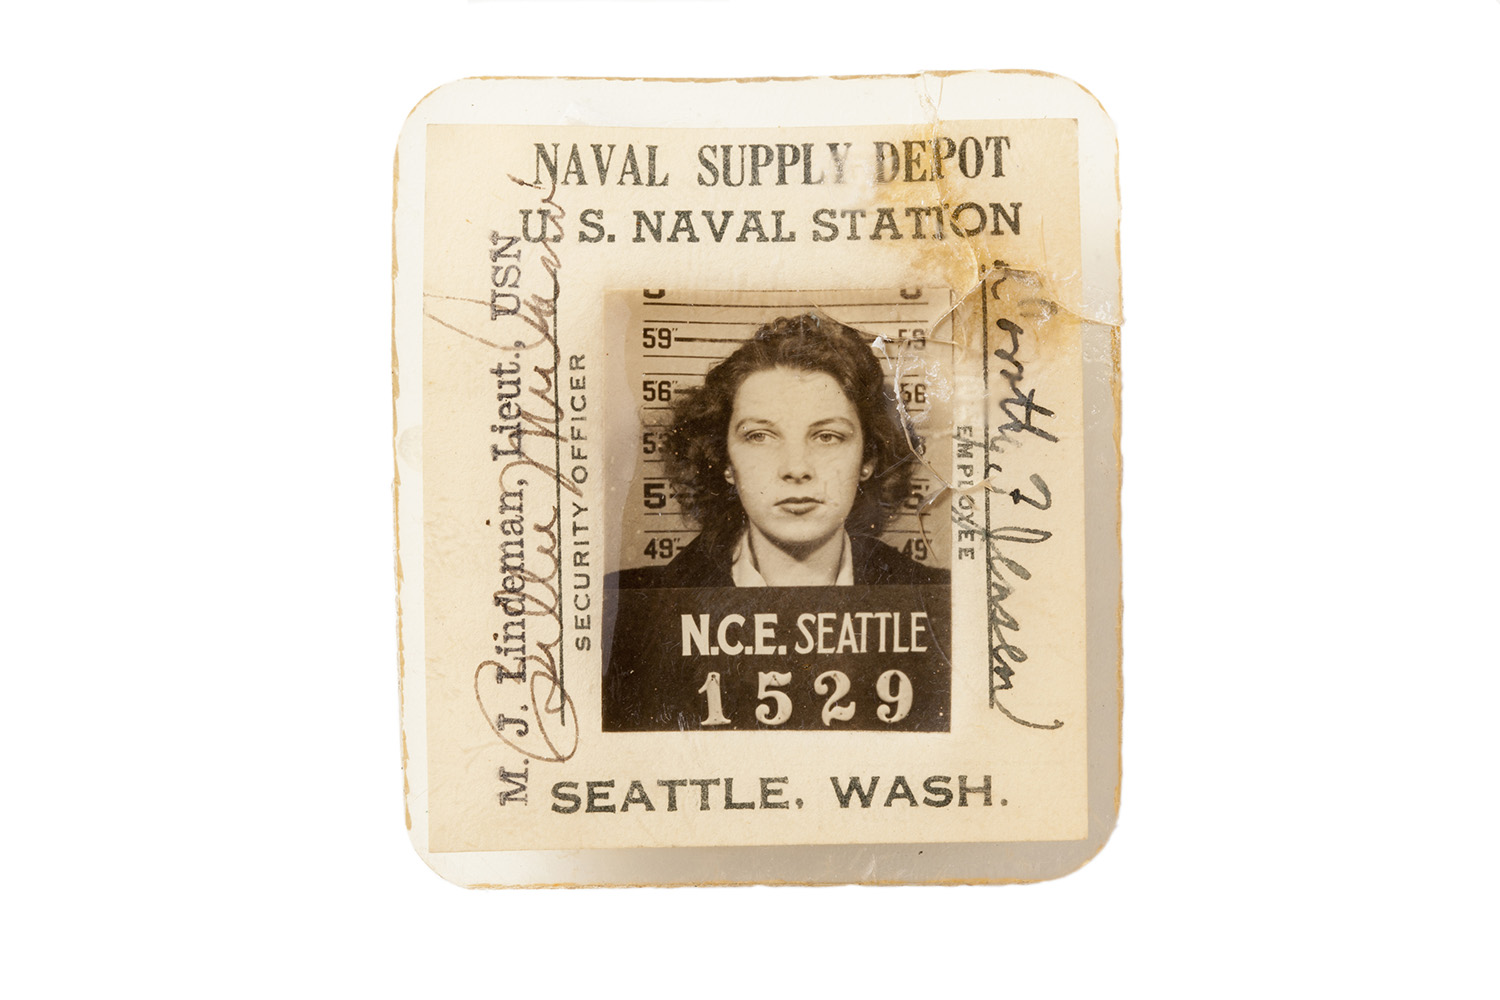 The ID badge of an employee at the Naval Supply Depot at the U.S. Naval Station in Seattle, Wash.